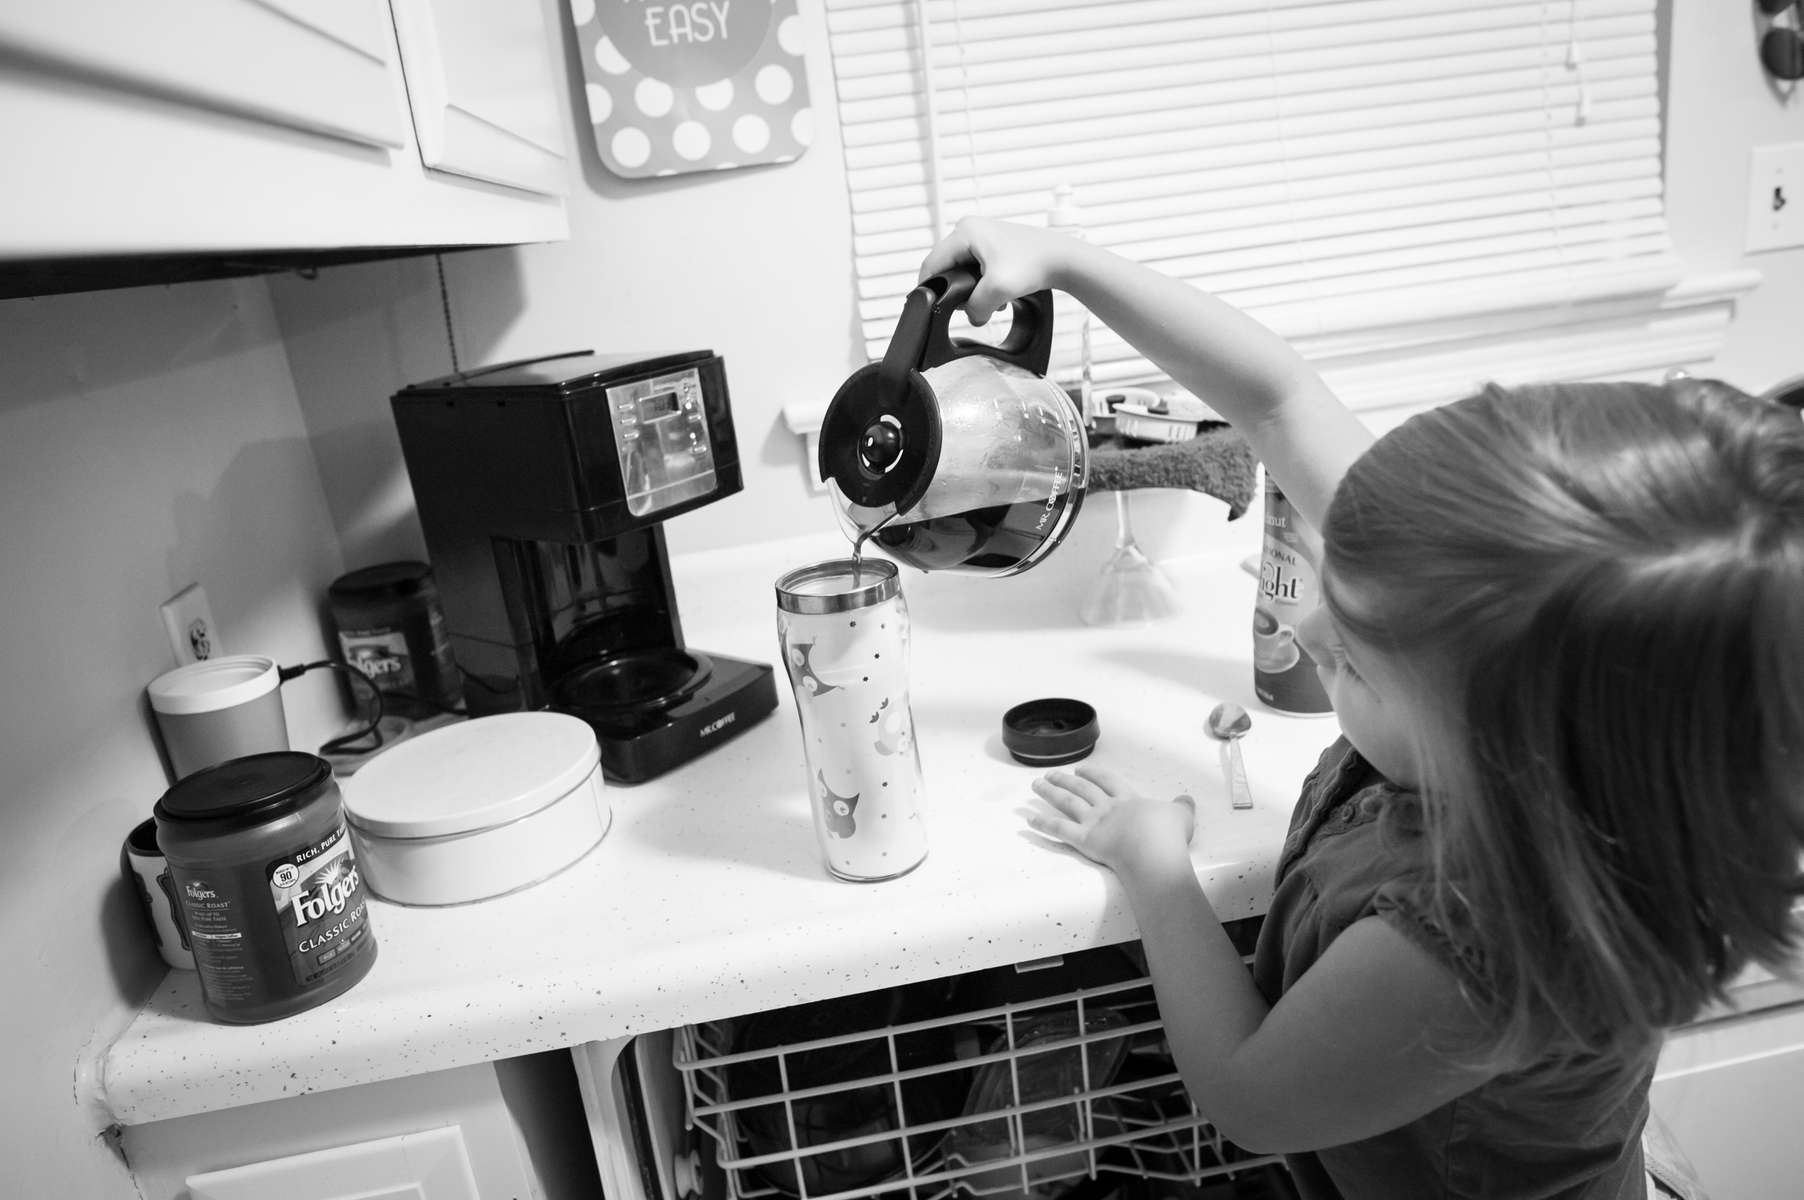 Zoey McCarver, 8-years-old, prepares a traveling mug of coffee for her mom, Caitlin Bell, before they leave for school and work on August 21, 2013 in Chattanooga, TN.